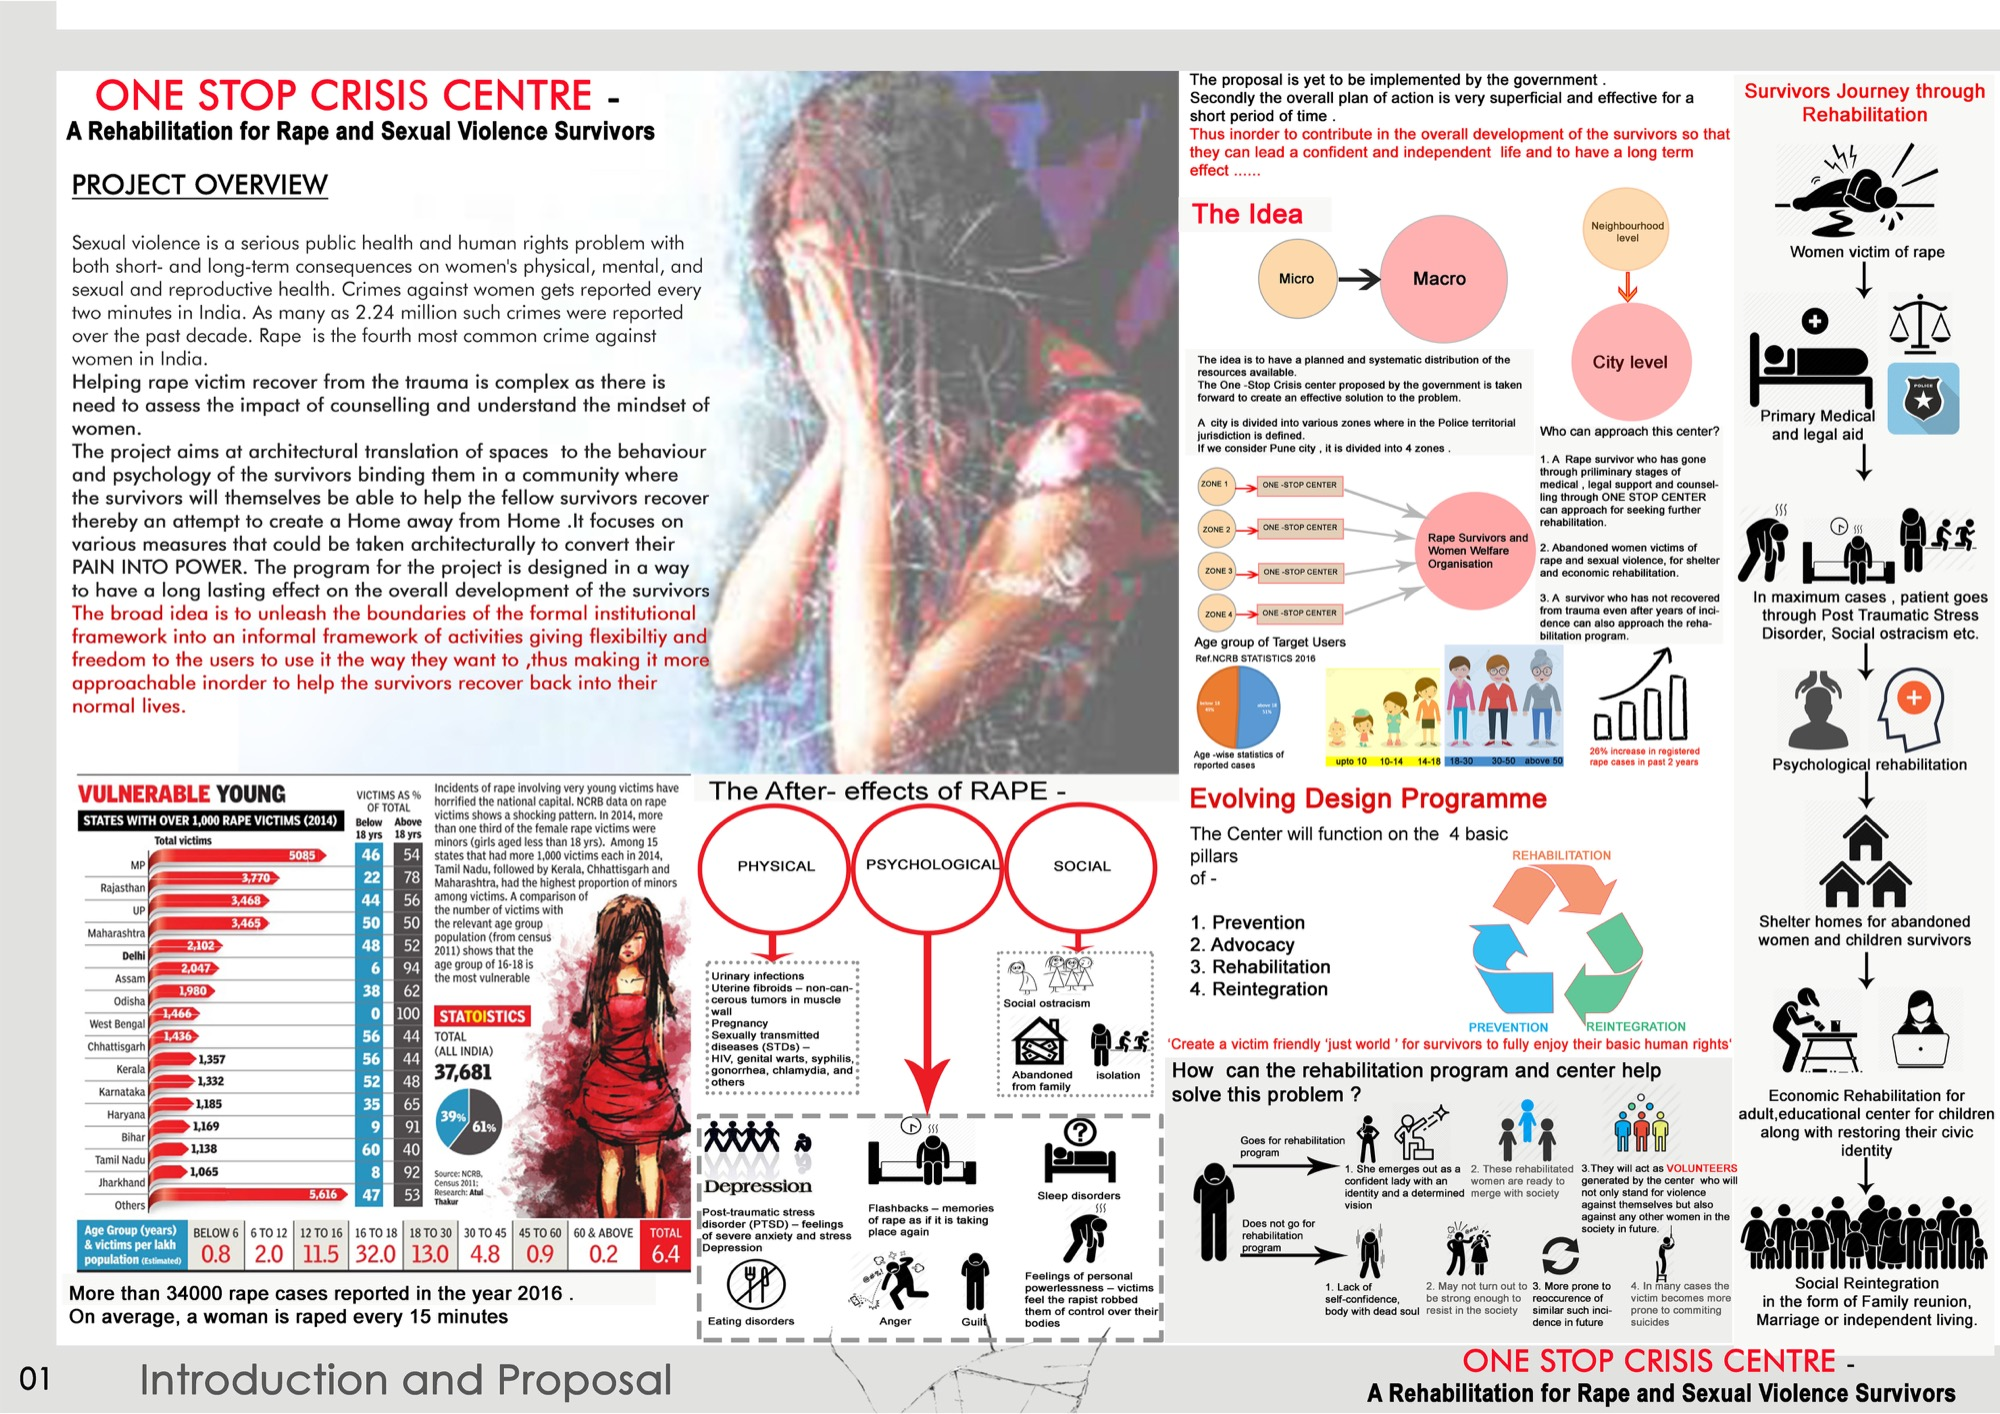 B.Arch Thesis: One Stop Crisis Centre at Pune, by Mehzabeen Sayyed, Allana College of Architecture 25